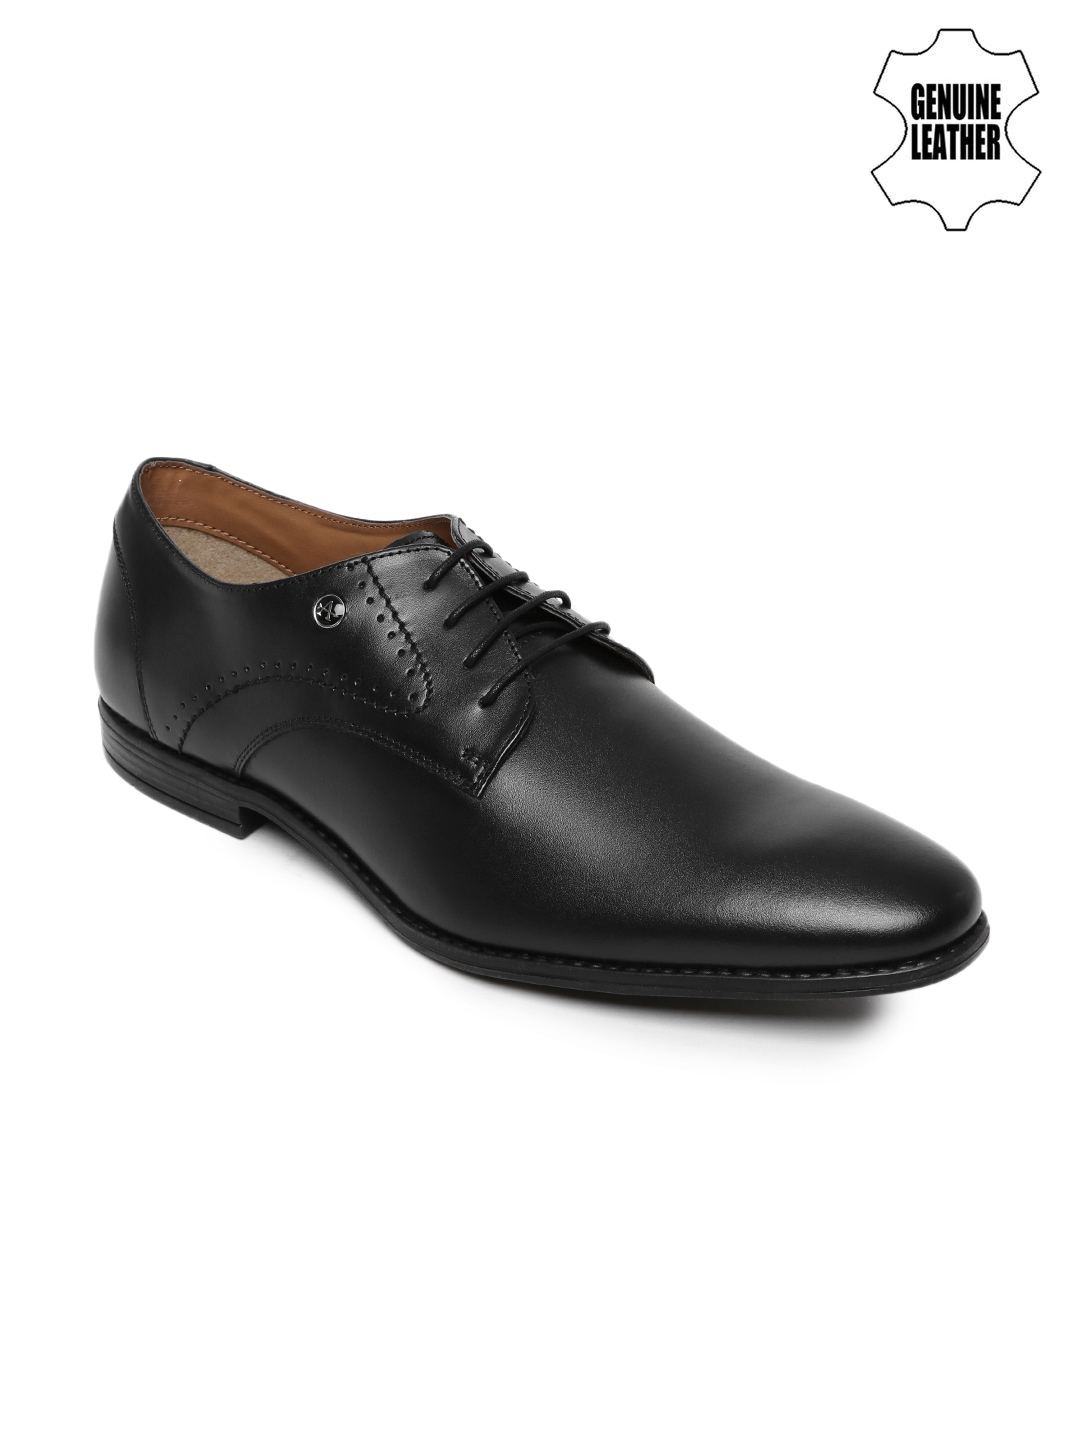 arrow black genuine leather derby formal shoes